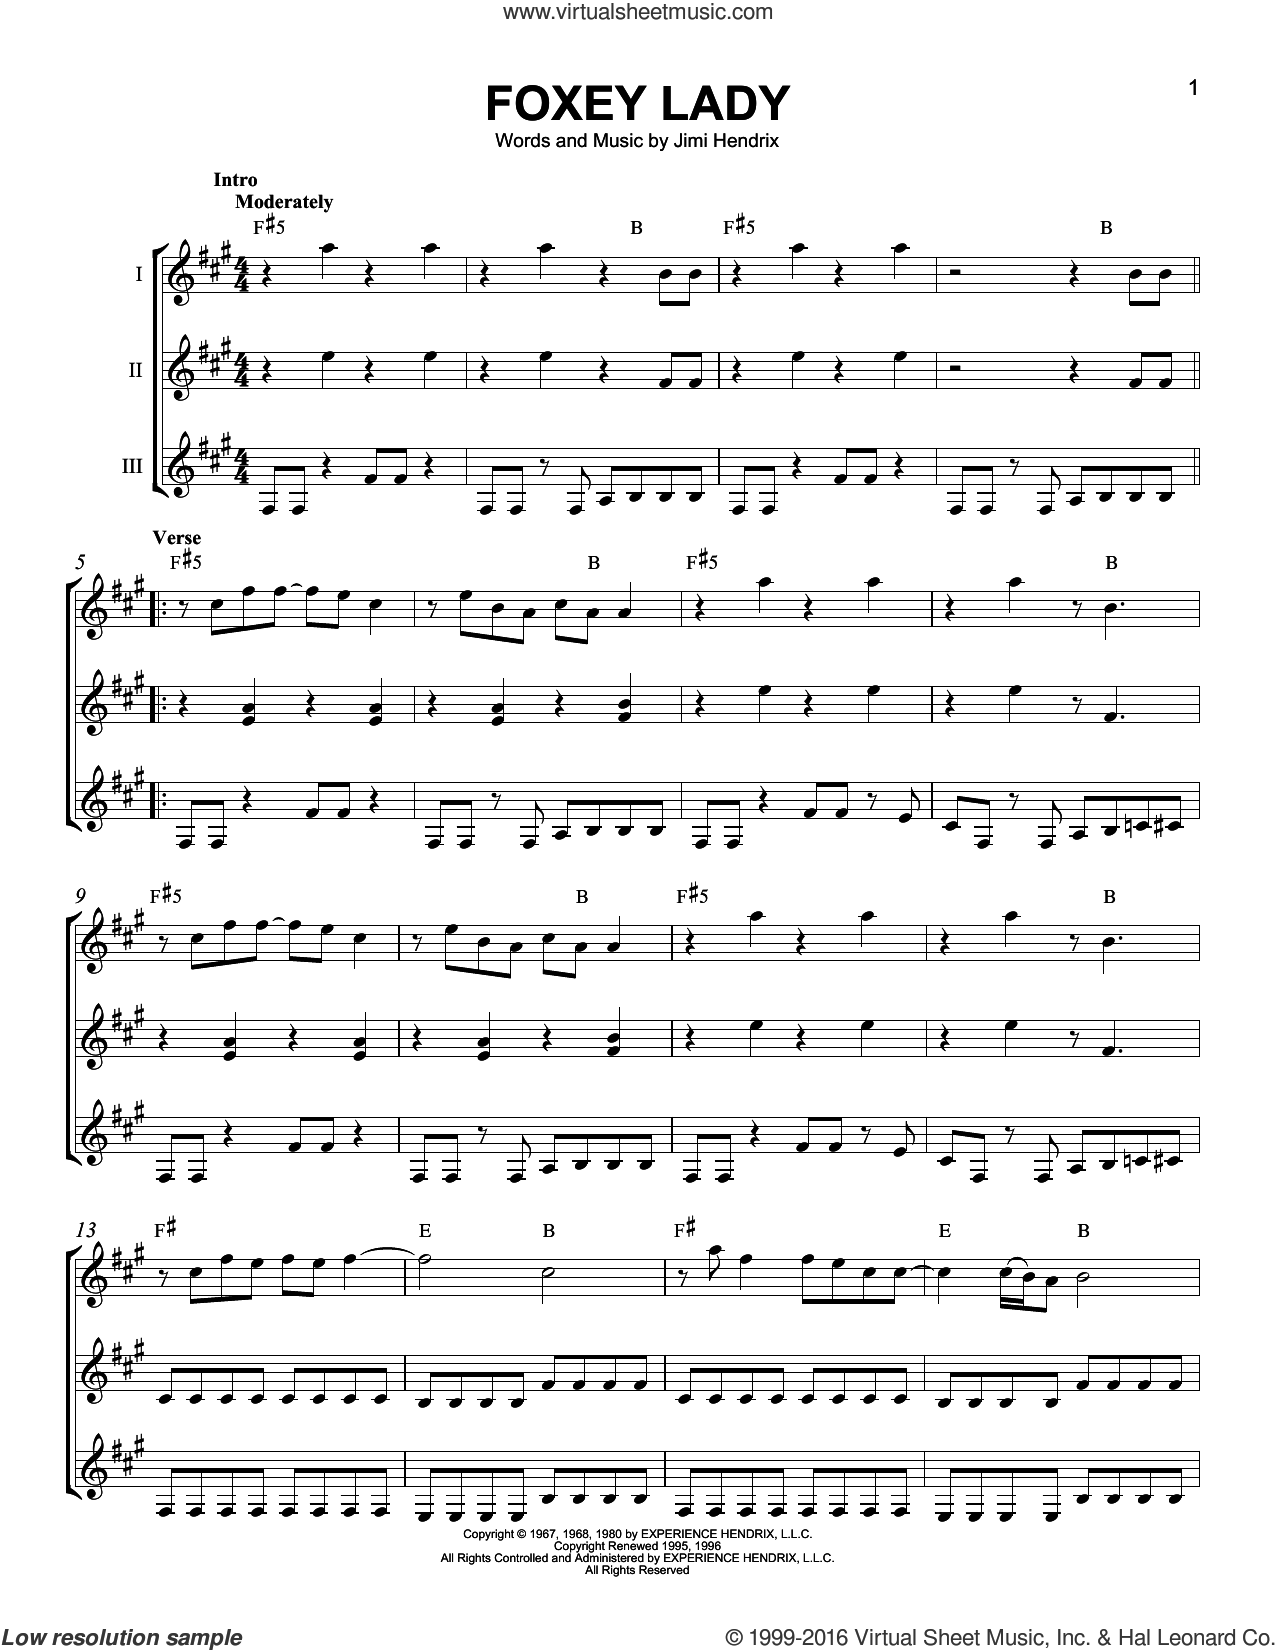 Foxey Lady sheet music for guitar ensemble by Jimi Hendrix. Score Image Preview.